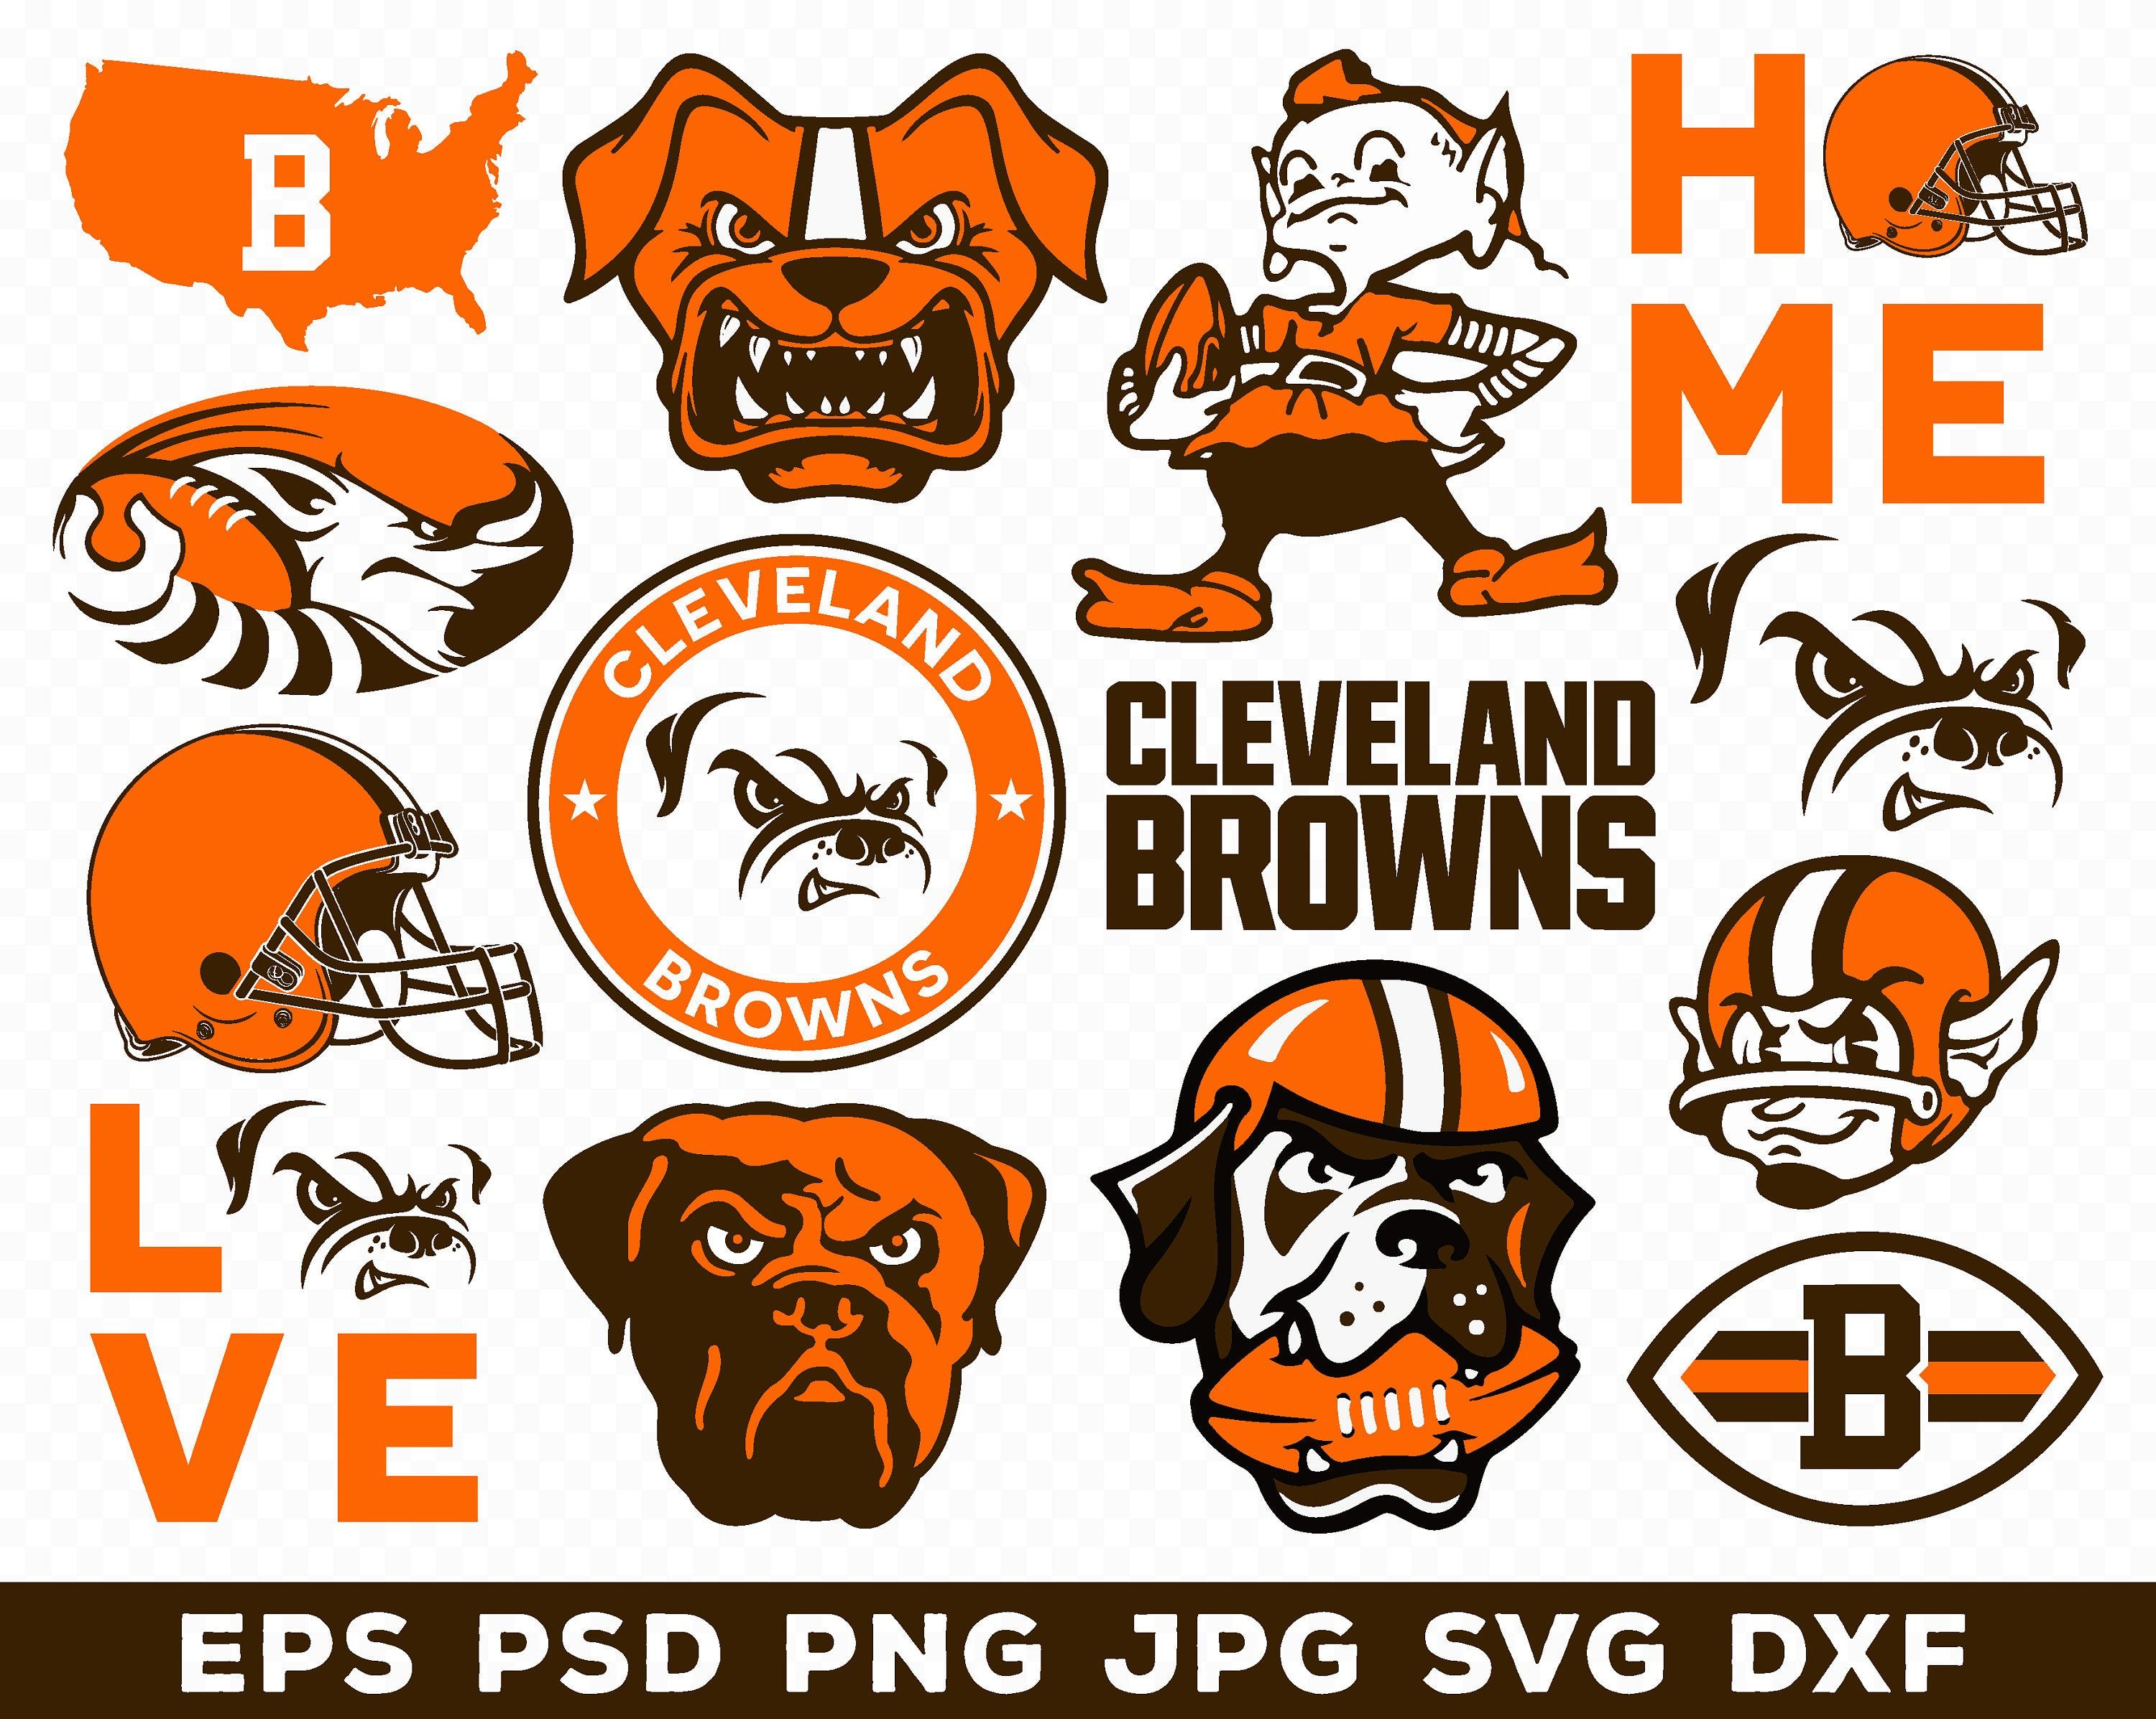 Cleveland Browns, Cleveland Browns logo, Cleveland Browns